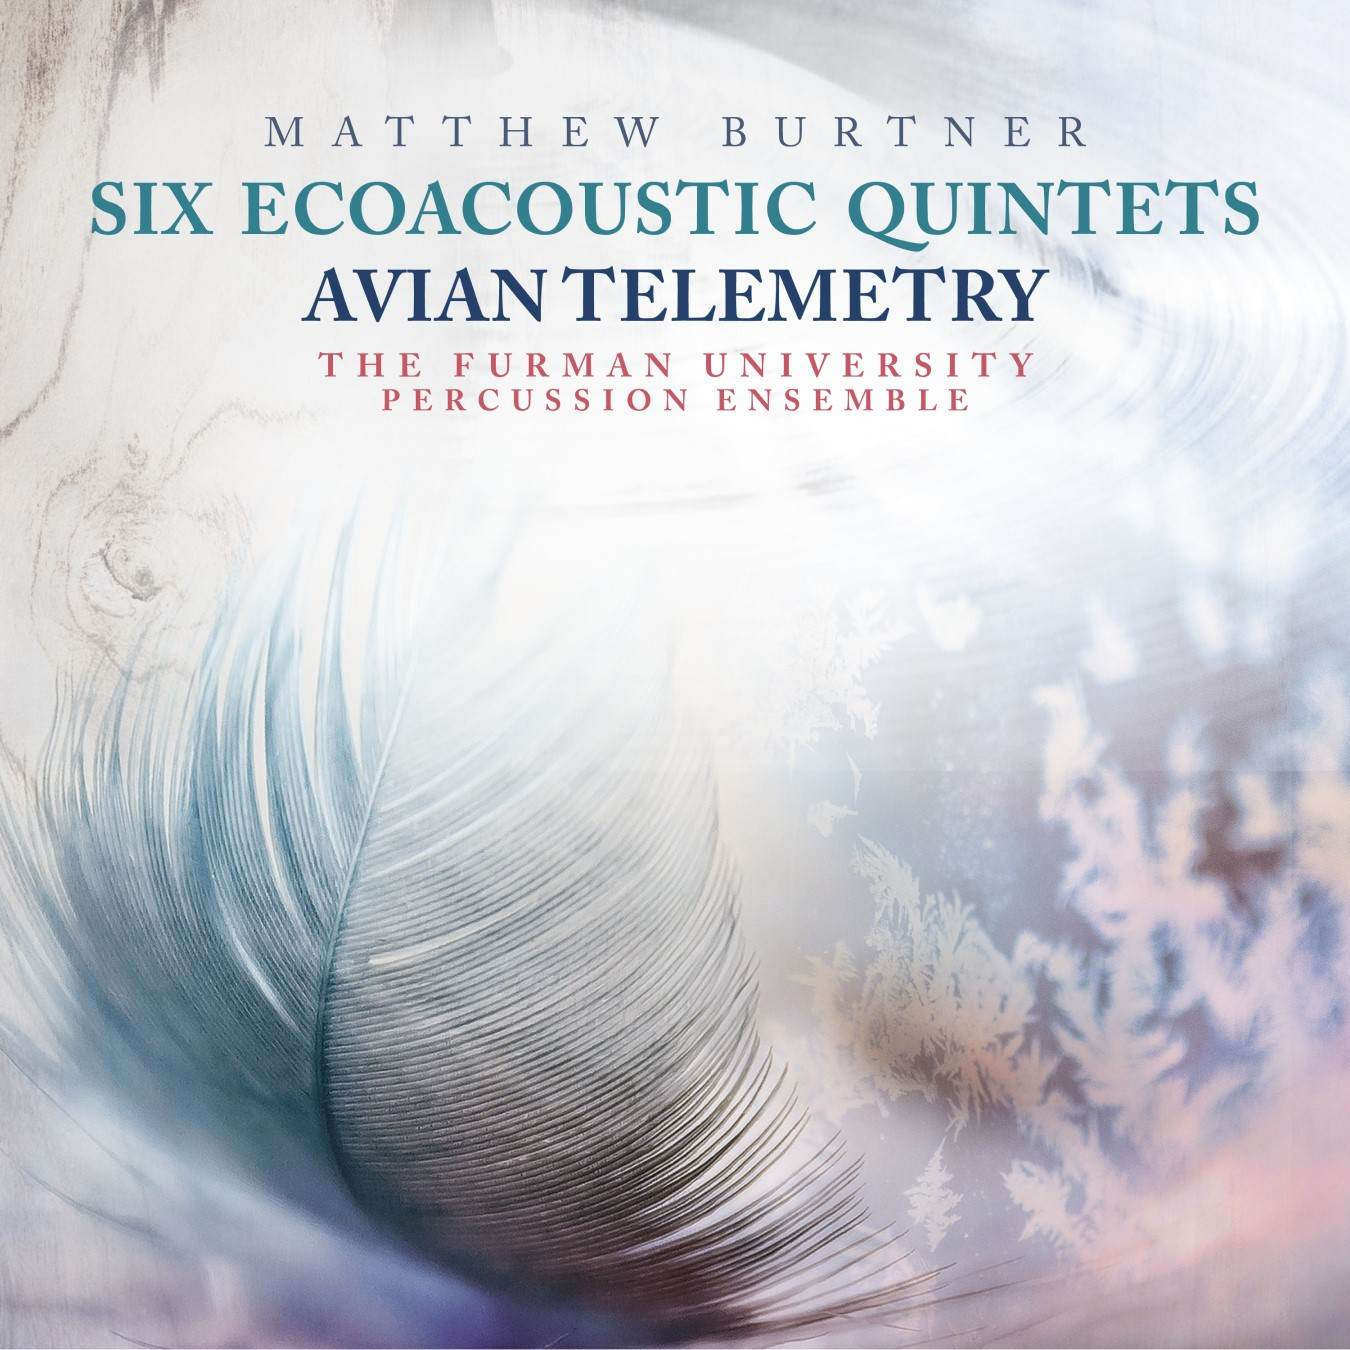 Matthew Burtner album art- feather and sky